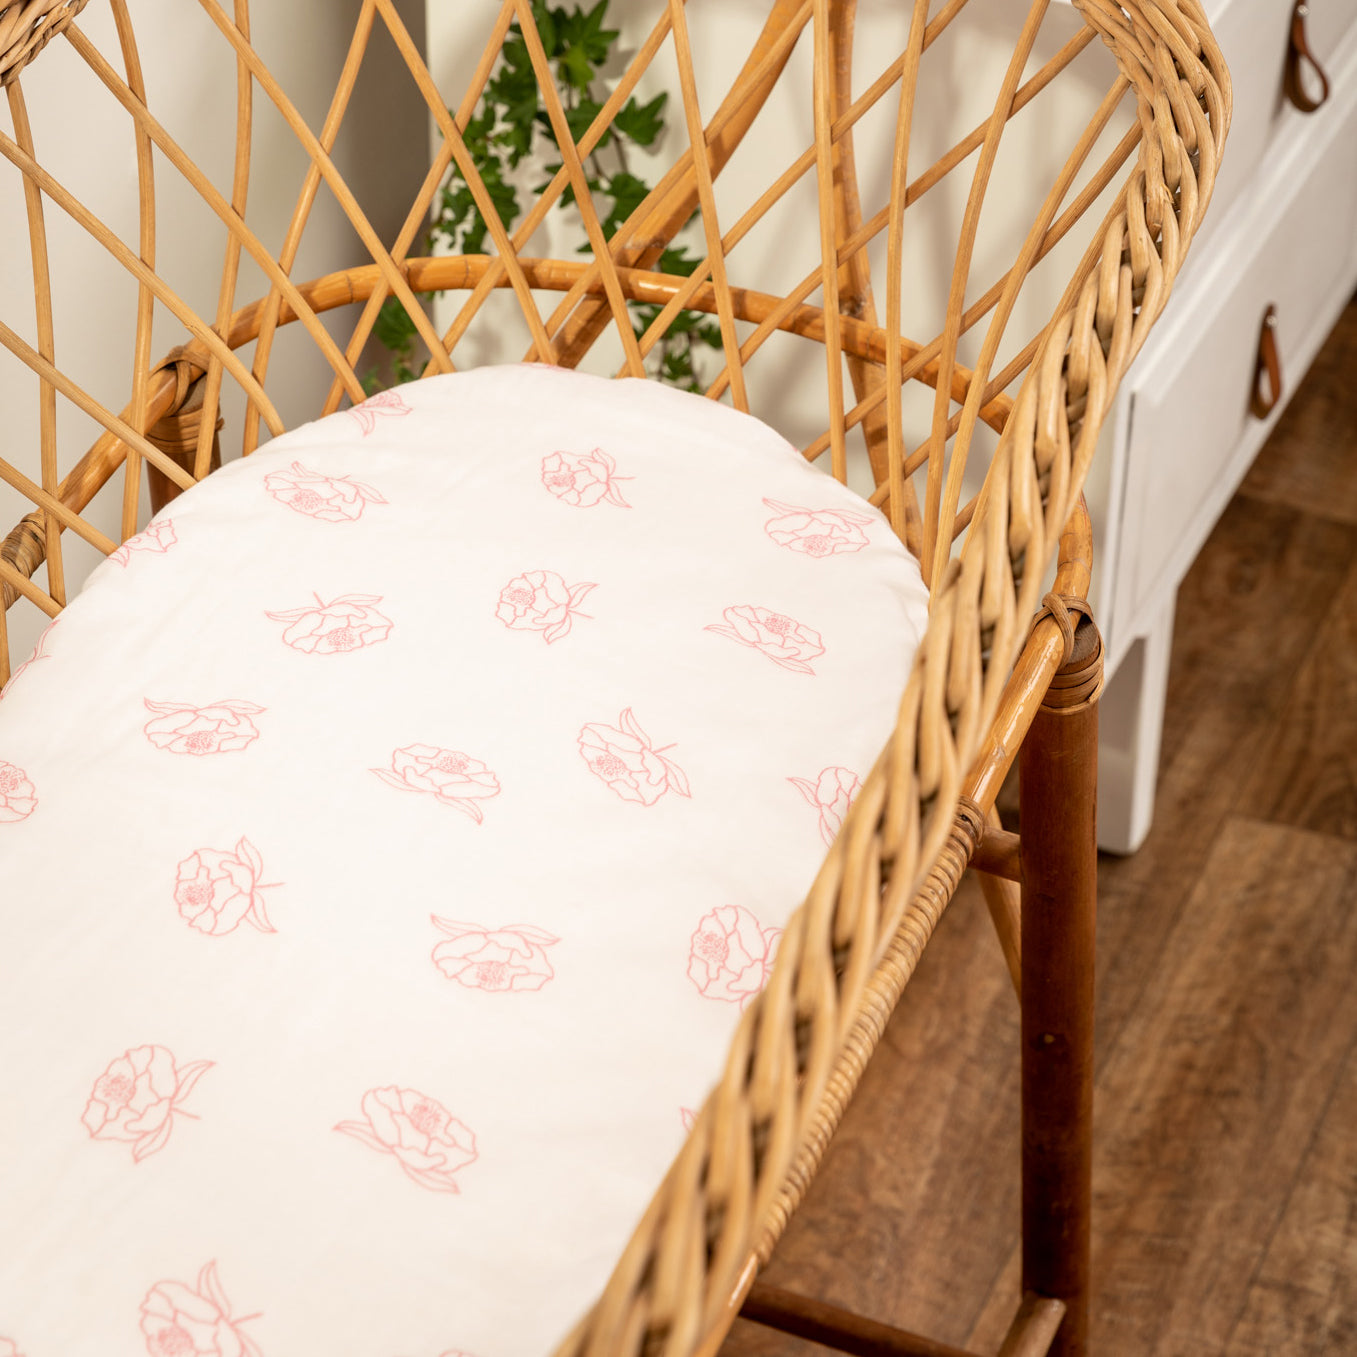 Organic cotton bassinet sheet fitted on a natural cane bassinet